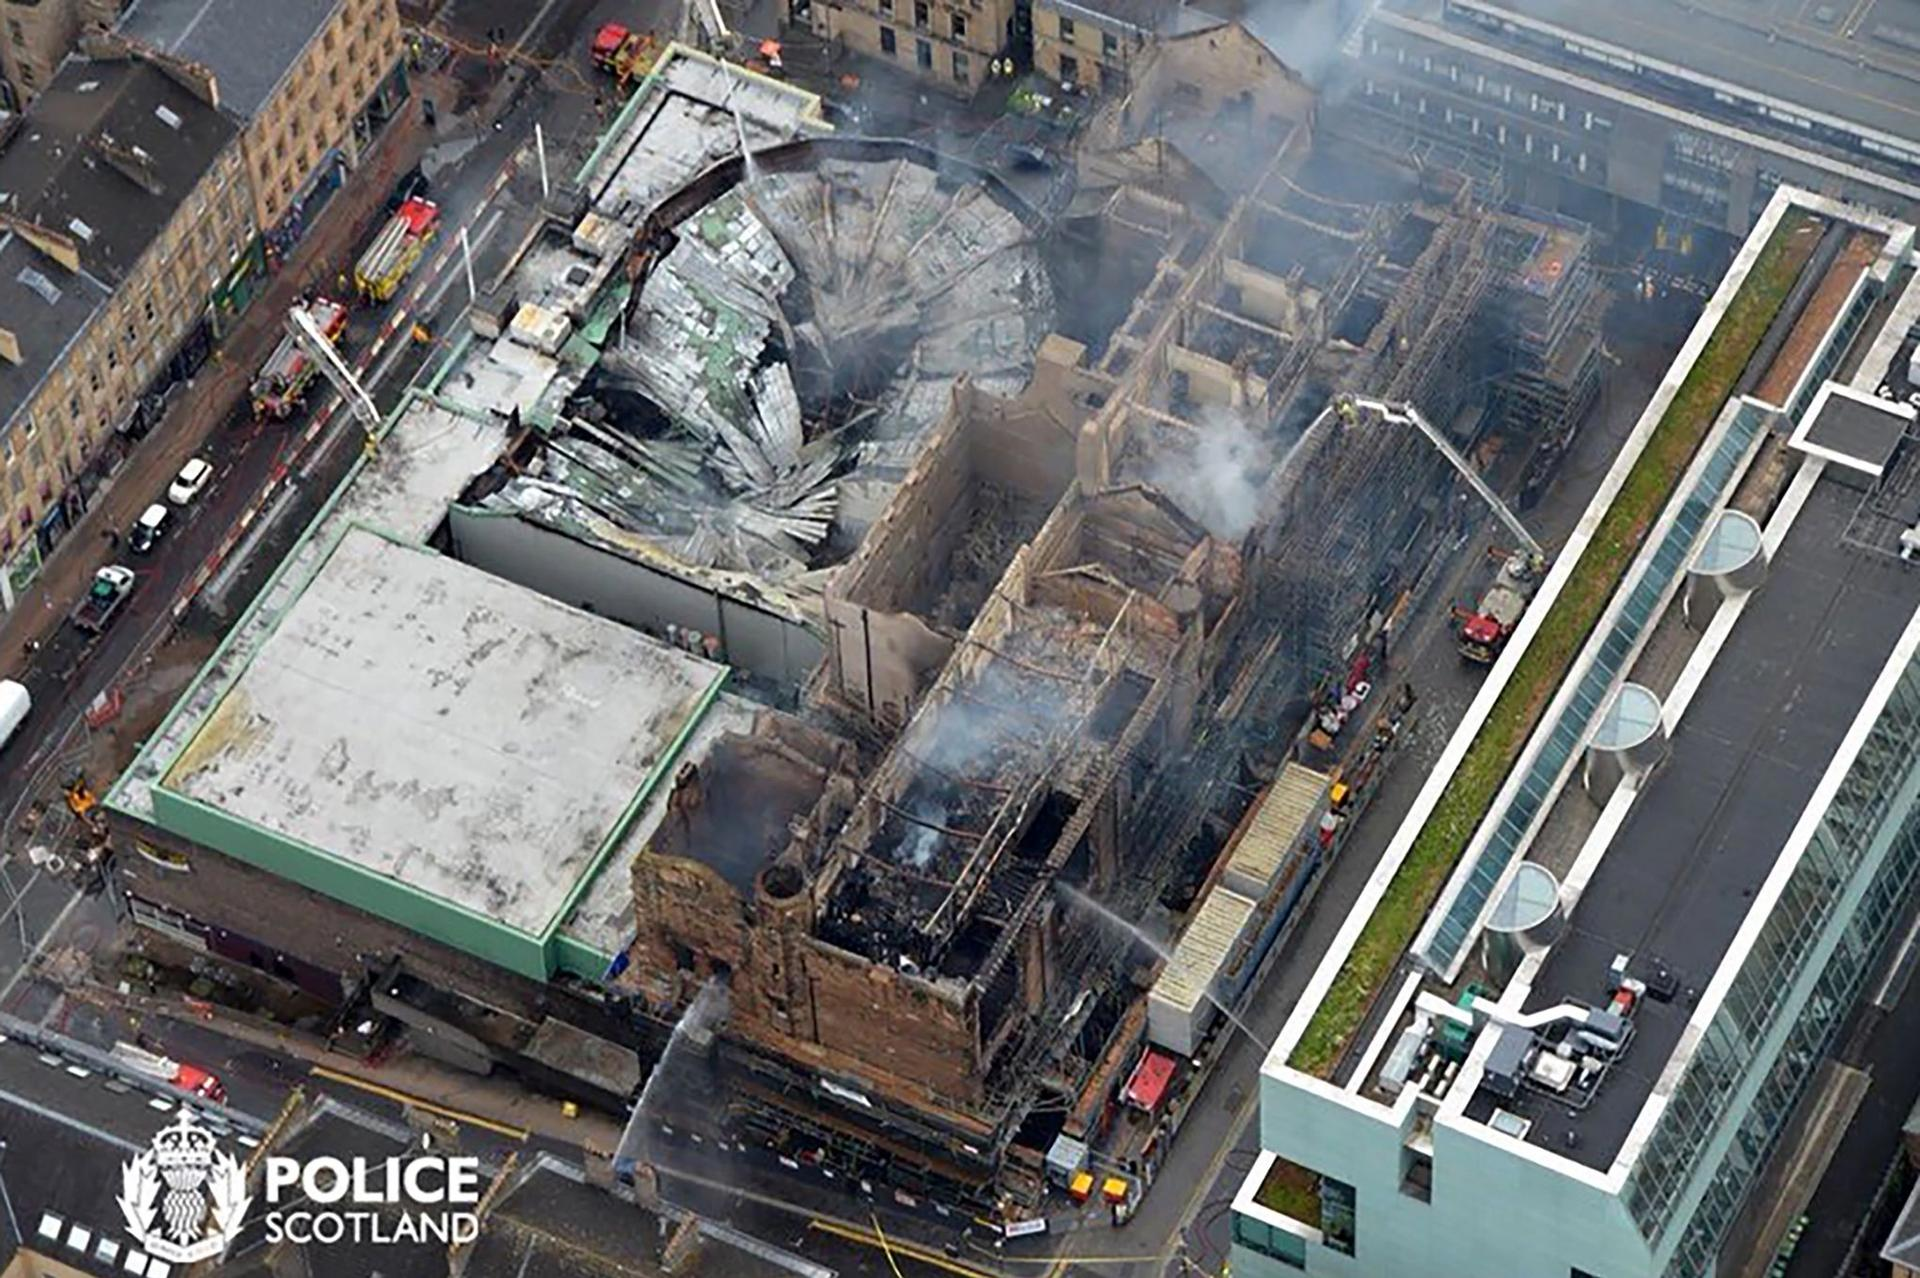 An aerial view of Glasgow School of Art on 16 June after fire ravaged the building AFP PHOTO / POLICE SCOTLAND